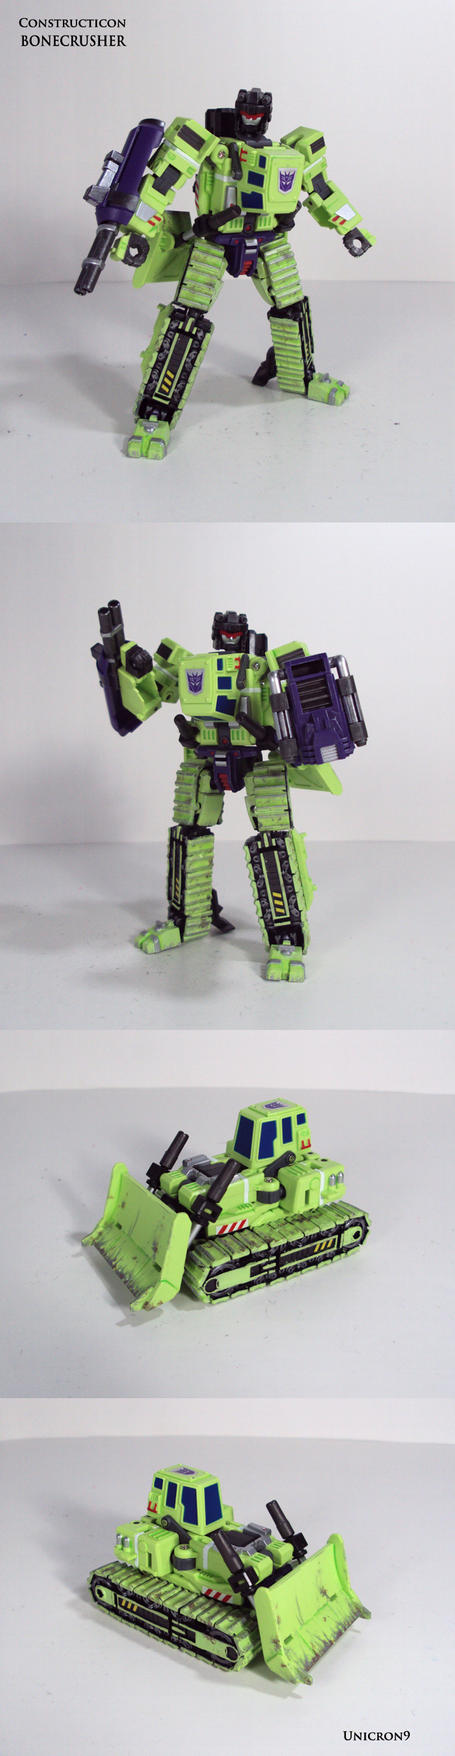 Constructicon: Bonecrusher by Unicron9